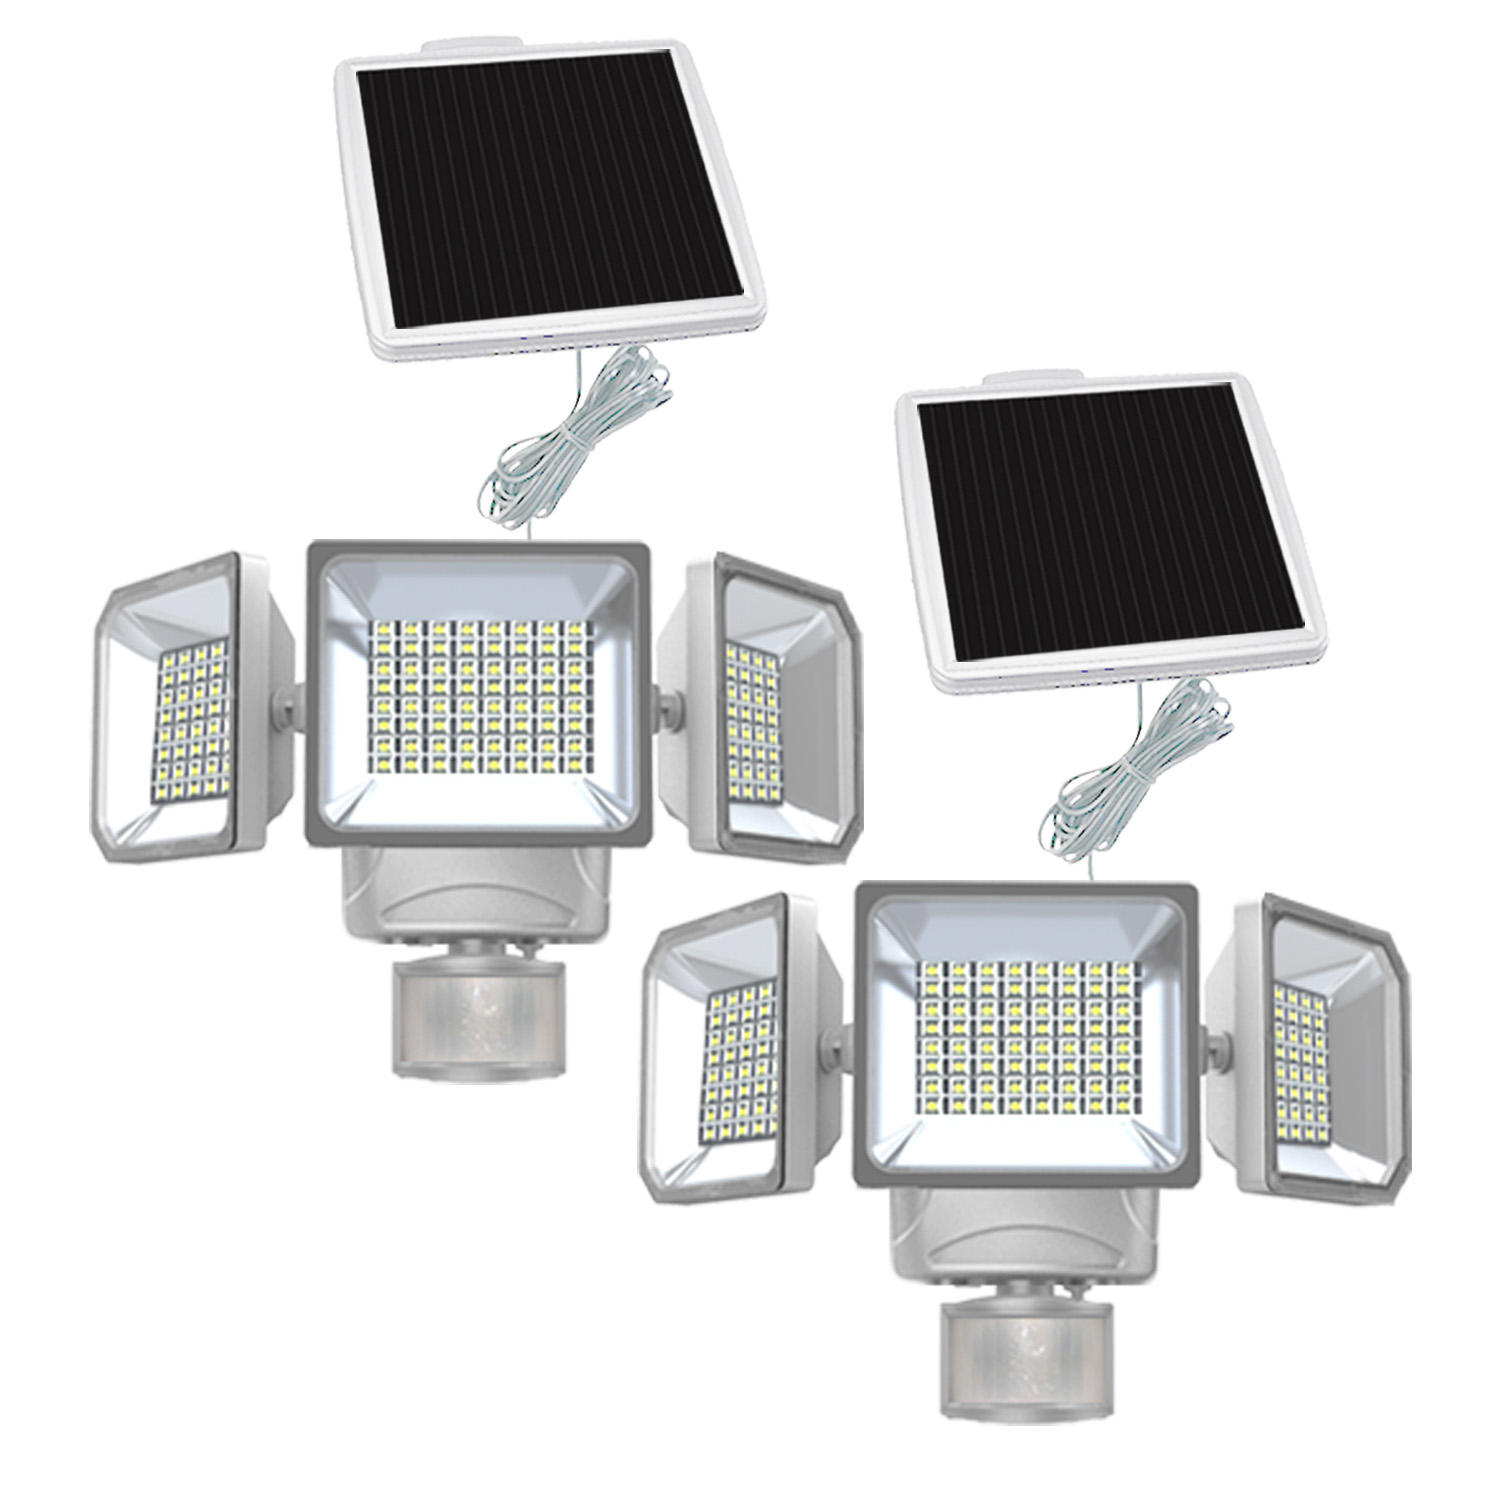 2-Pack Westinghouse 2000 Lumen Solar Motion Activated Security Light